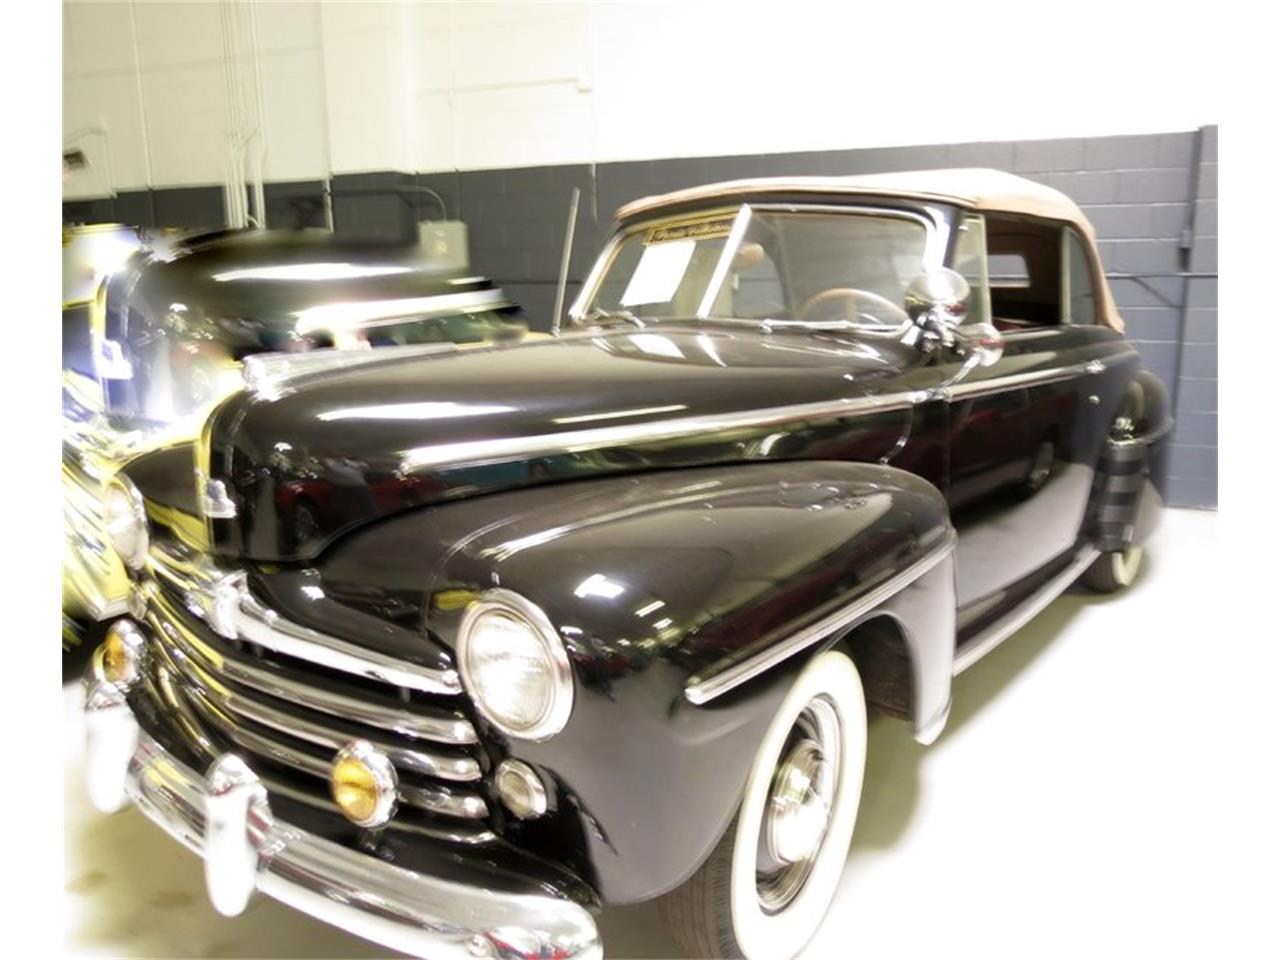 Large Picture of 1948 Ford Super Deluxe located in Dayton Ohio - $39,995.00 Offered by Gem City Classic Autos - FHXH